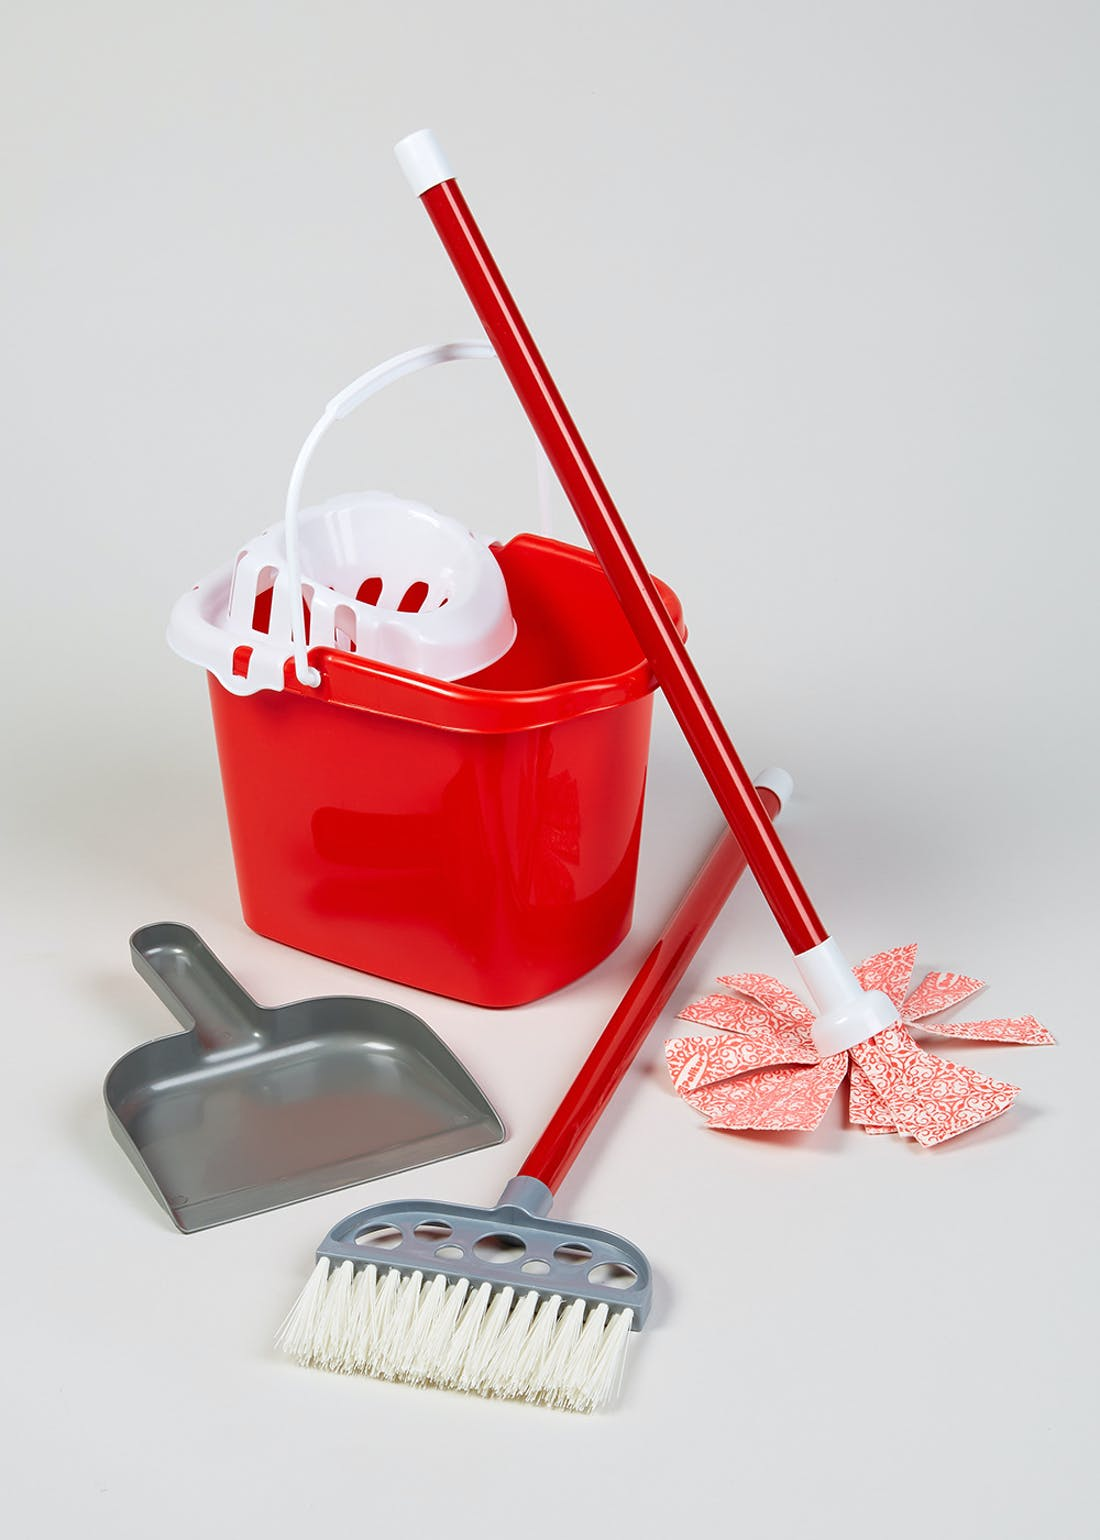 Kids Cleaning Bucket Play Set (55cm x 19cm x 11cm)